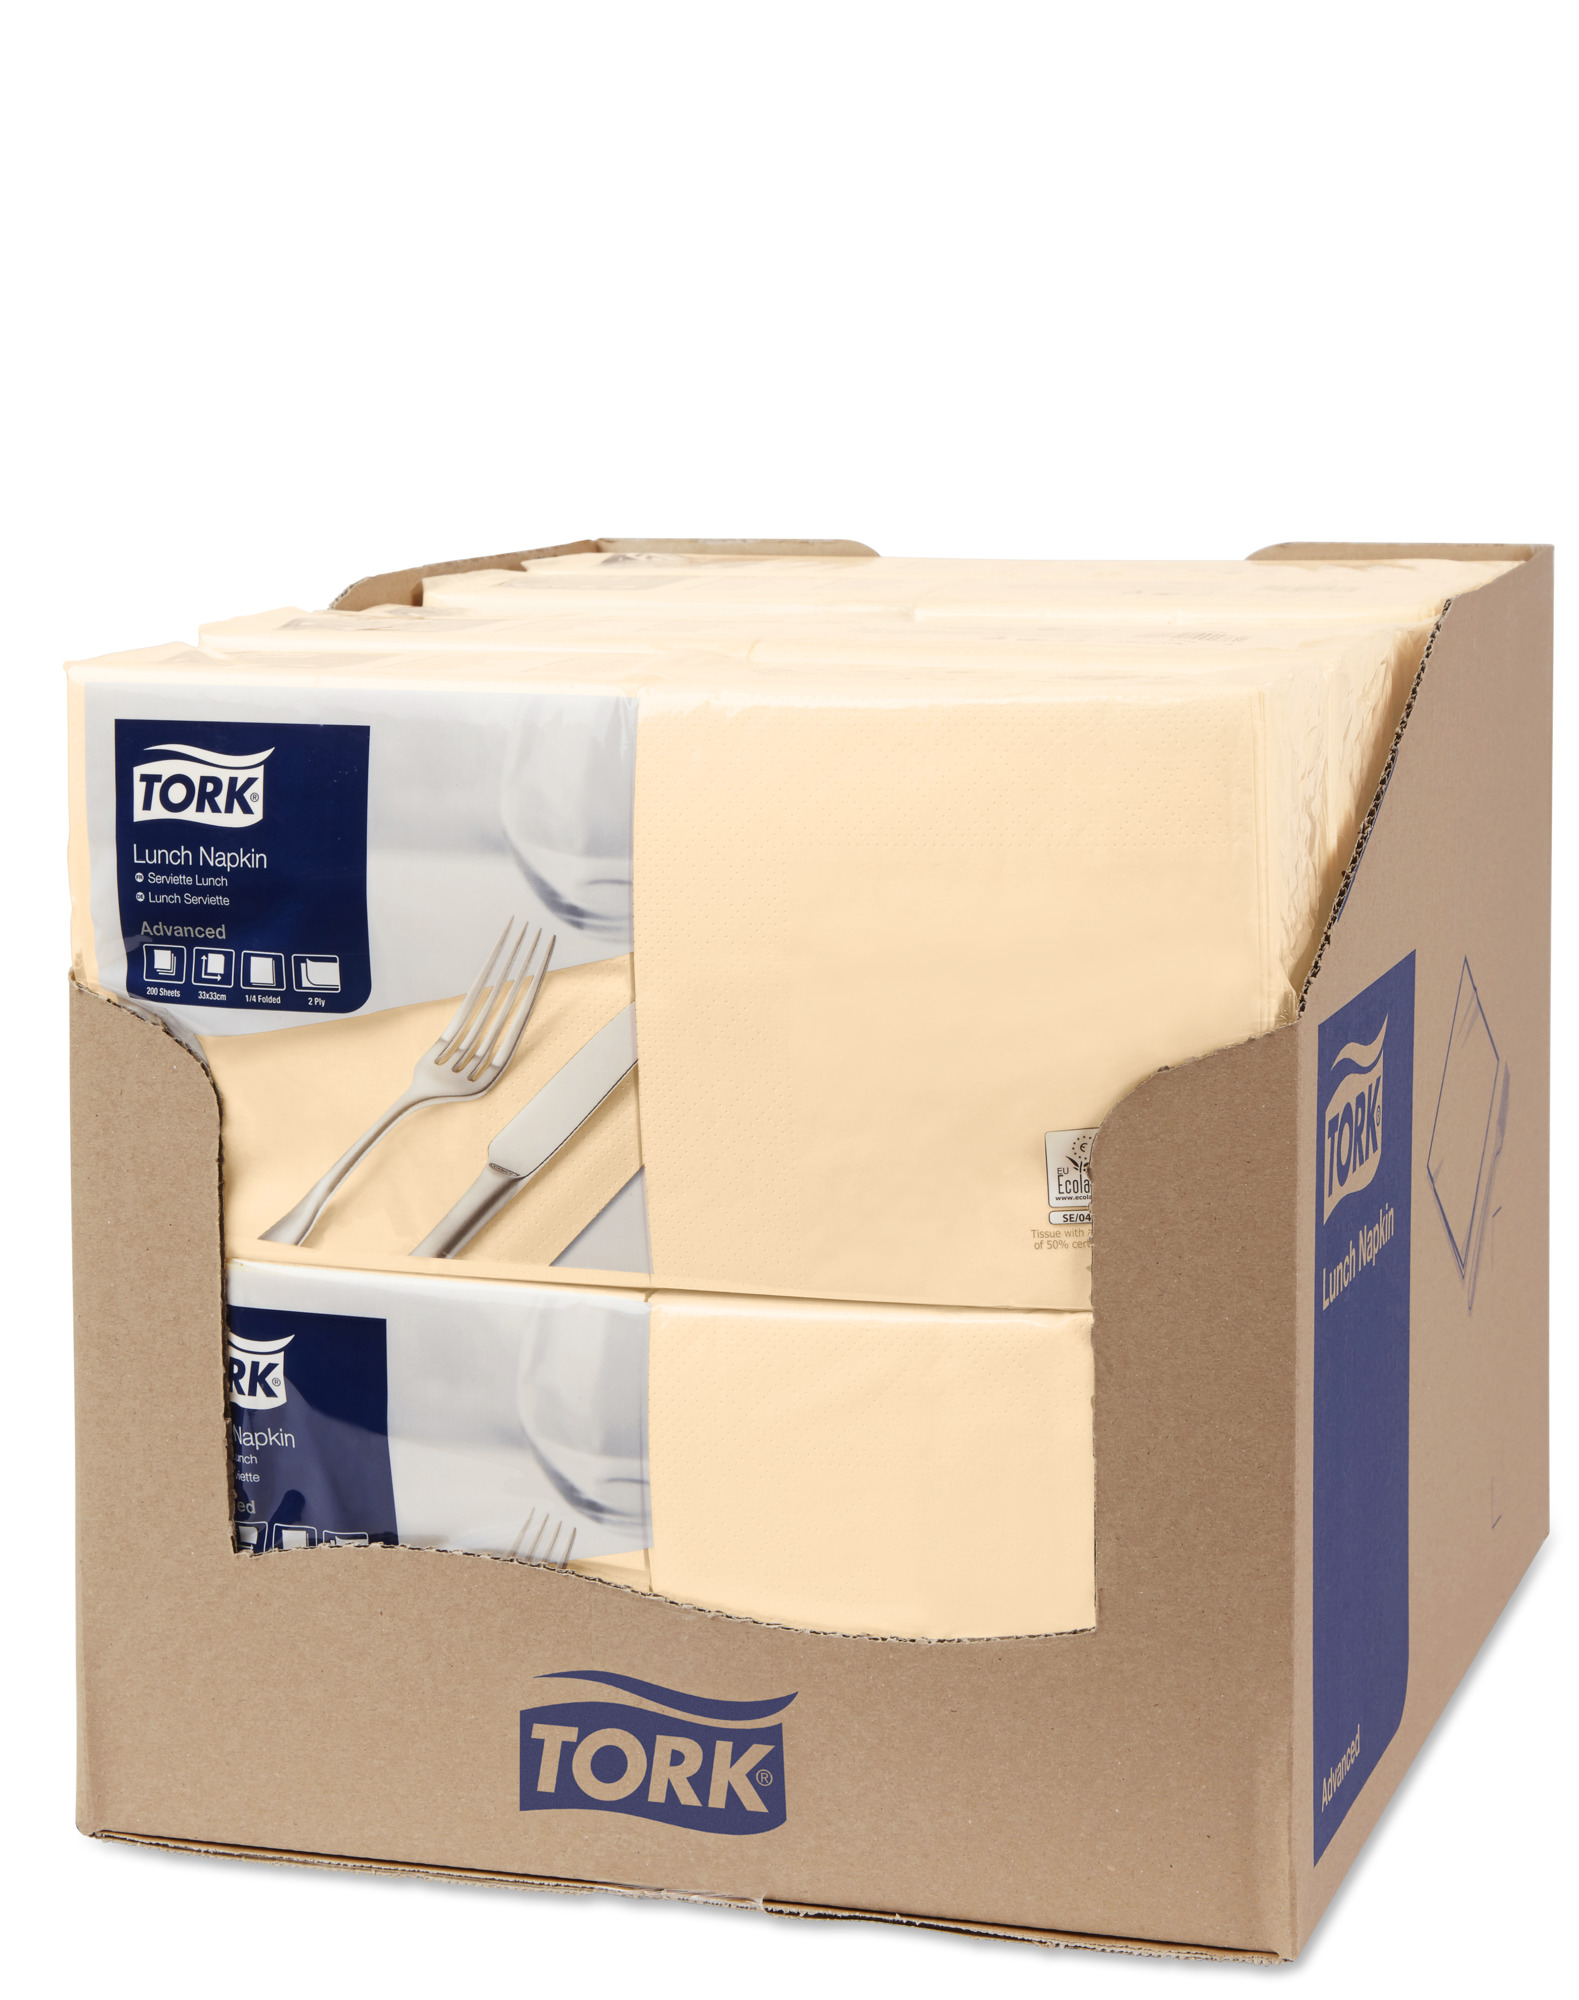 Салфетки TORK Advanced 33х33см, 2слоя, песочные/477206